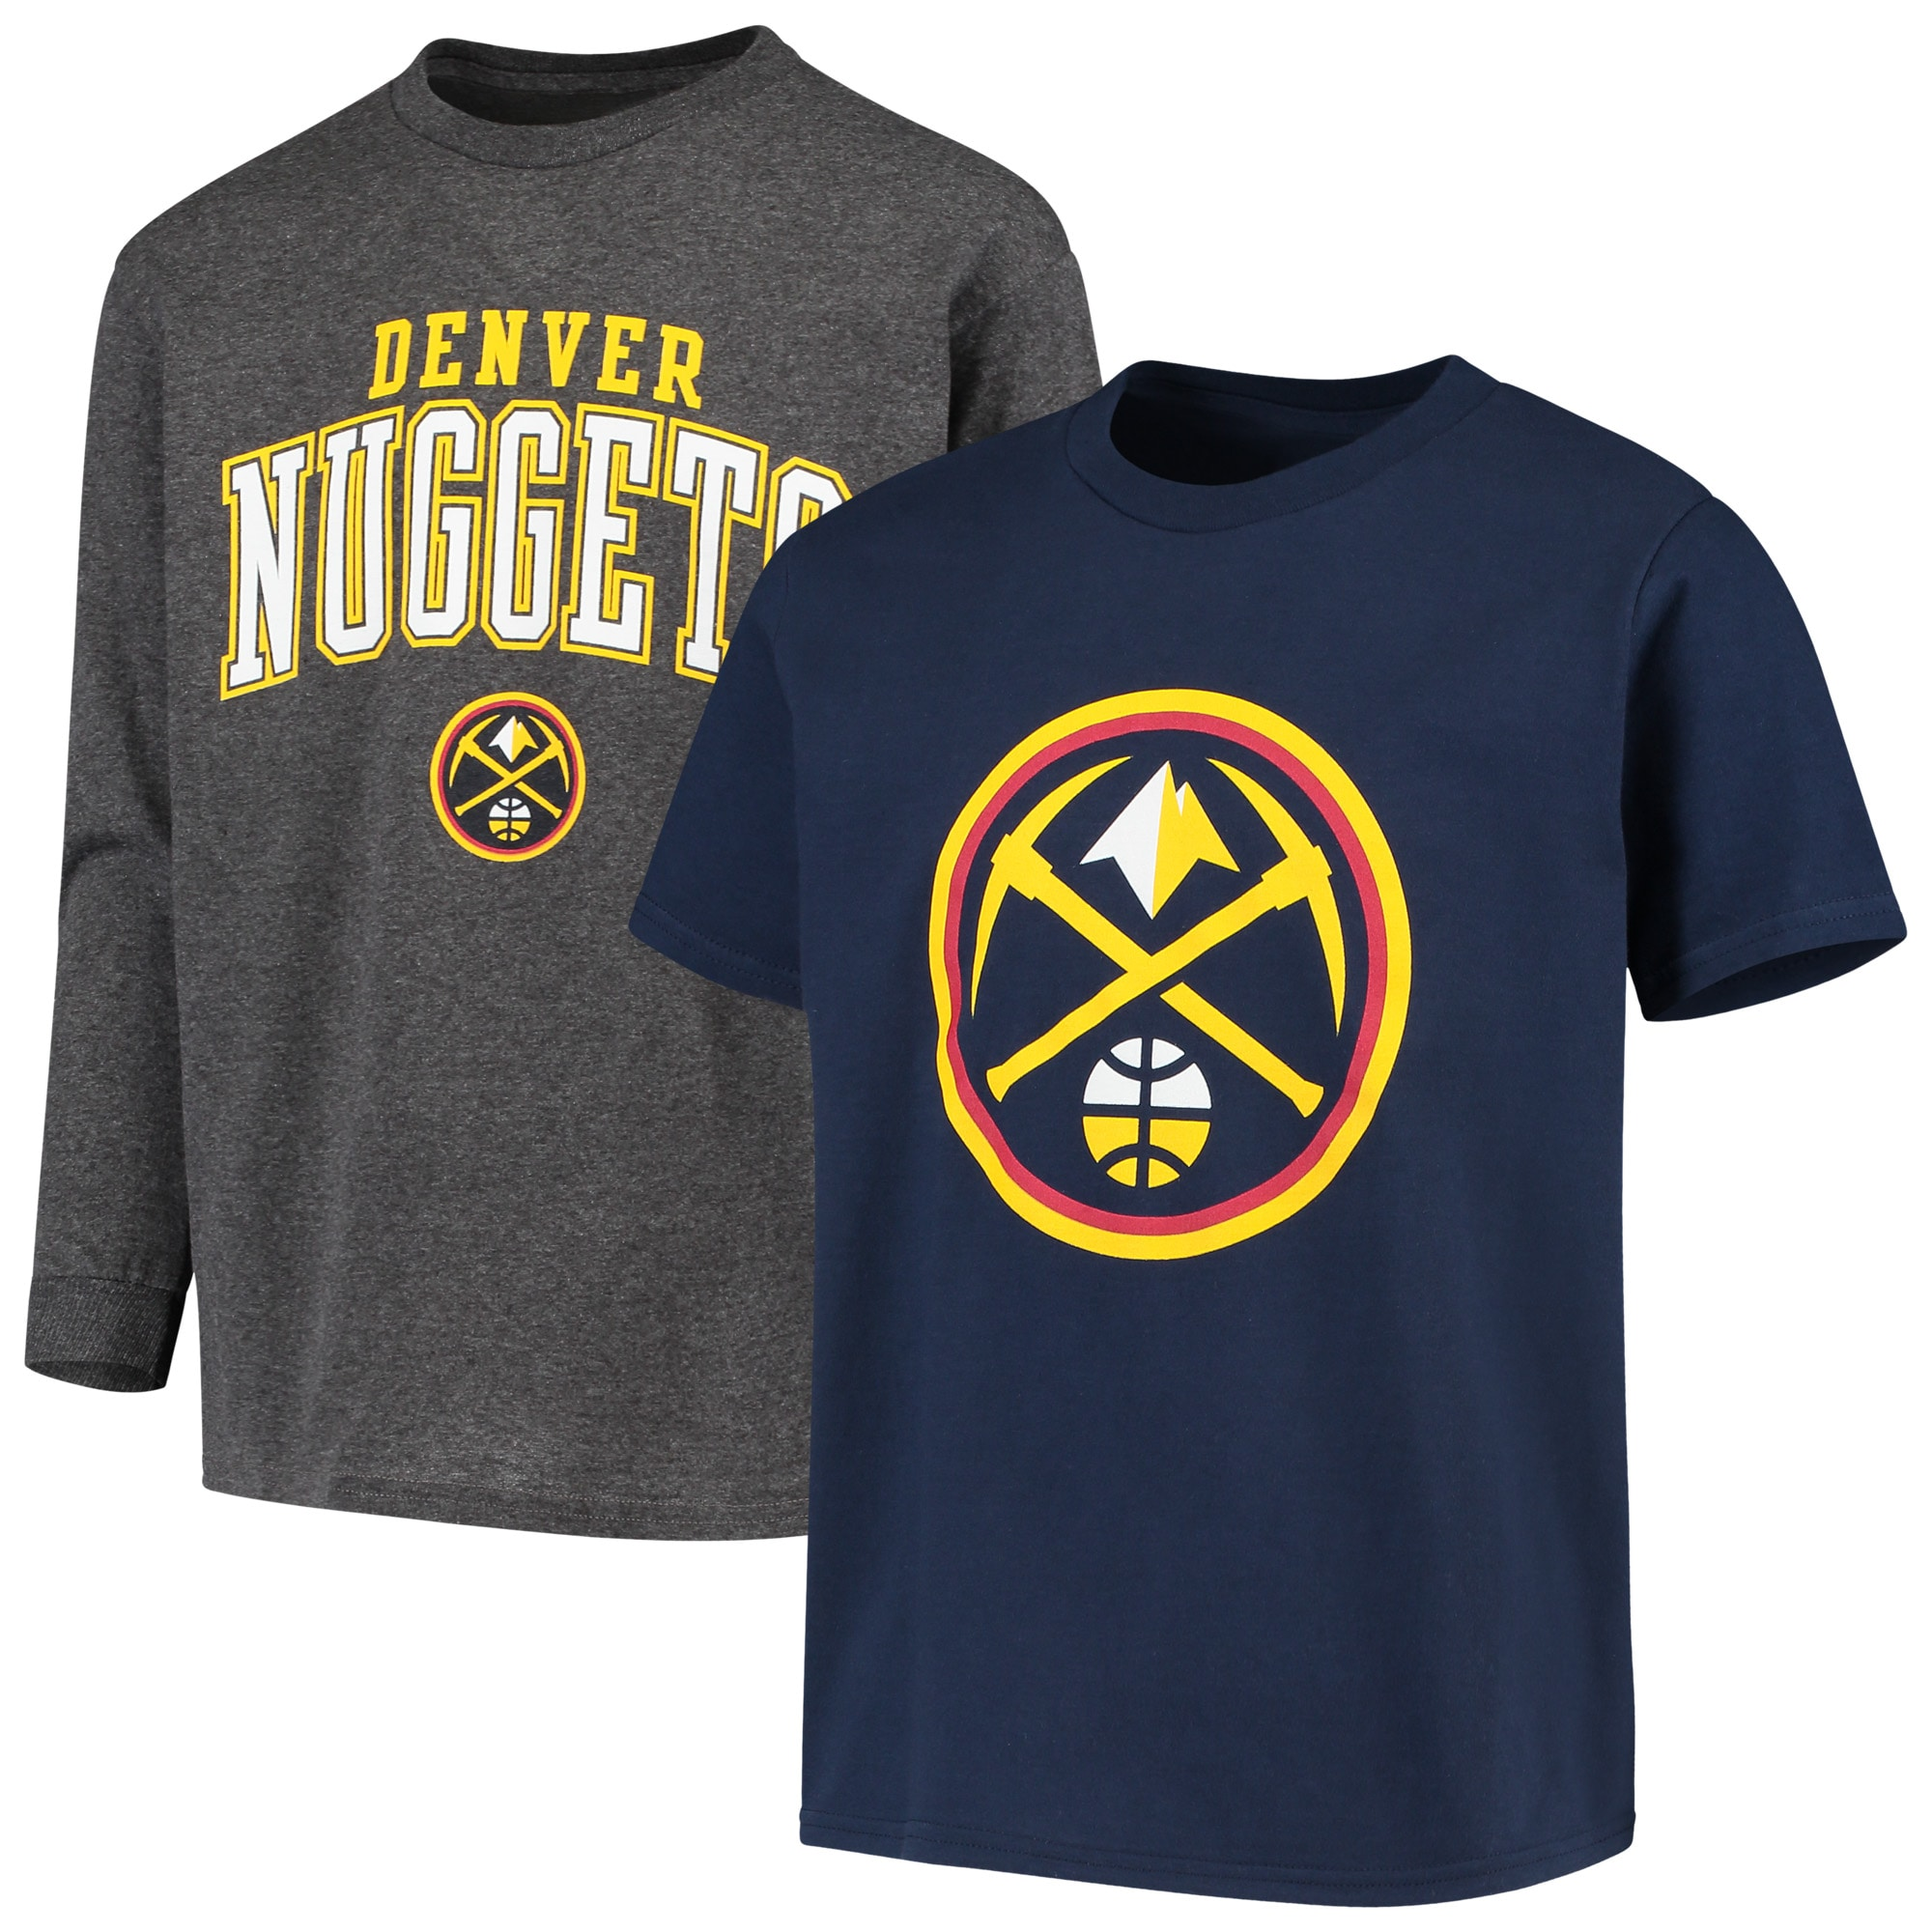 Denver Nuggets Fanatics Branded Youth Square T-Shirt Combo Set - Navy/Gray